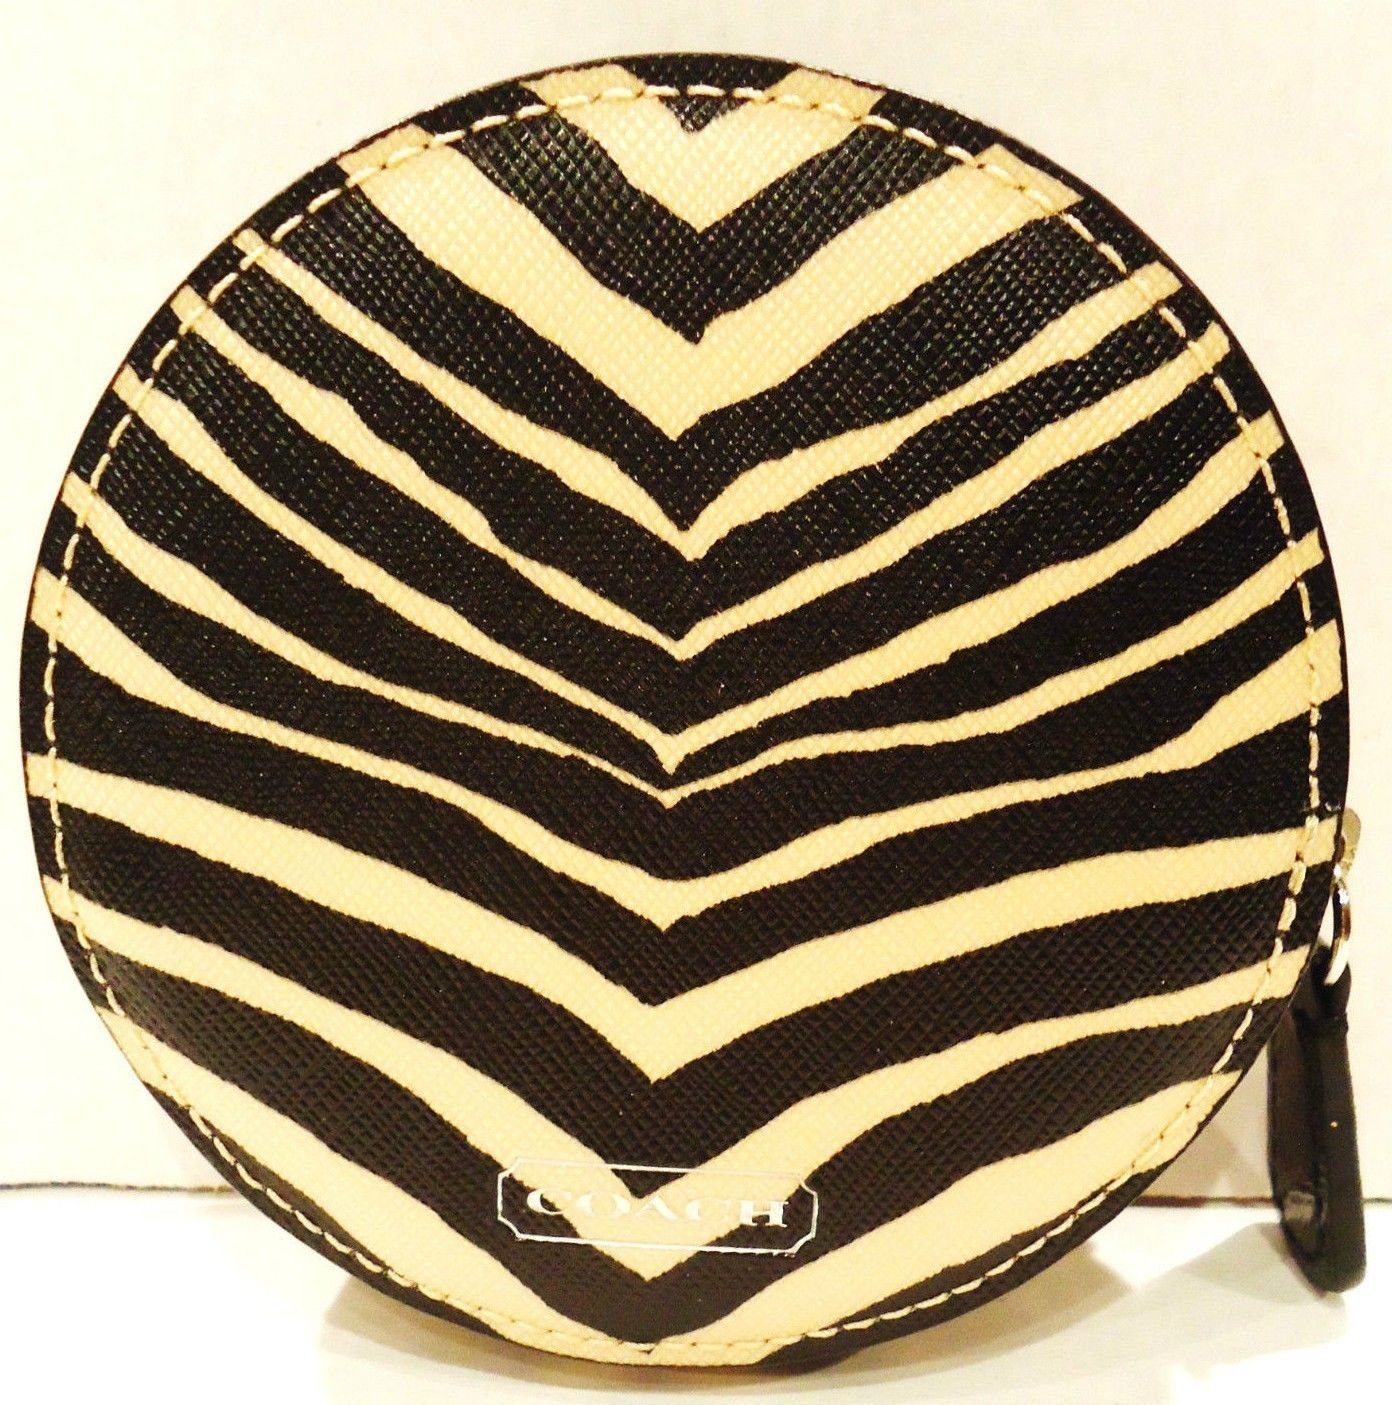 COACH - ANIMAL - ZEBRA - PRINT - KHAKI - BLACK - COIN - PURSE - BRAND NEW - NWT